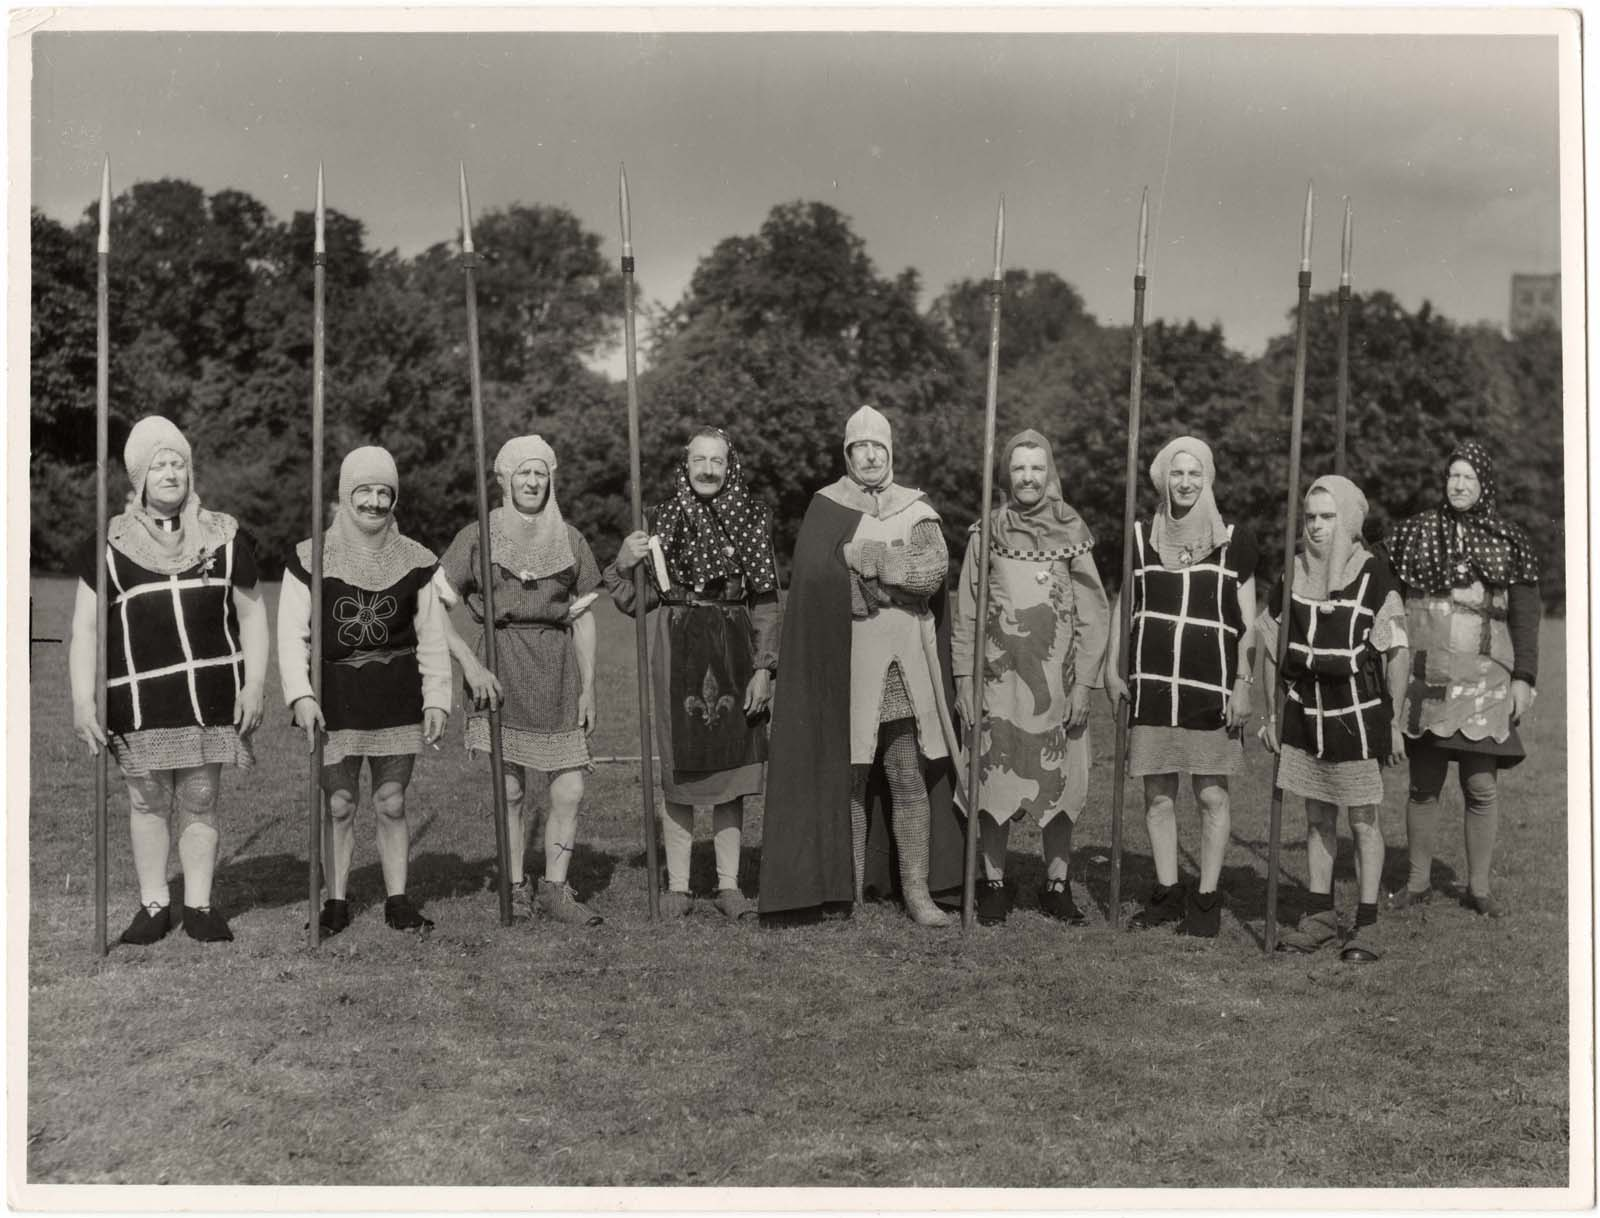 a black and white photo of a group of men dressed as medieval soldiers